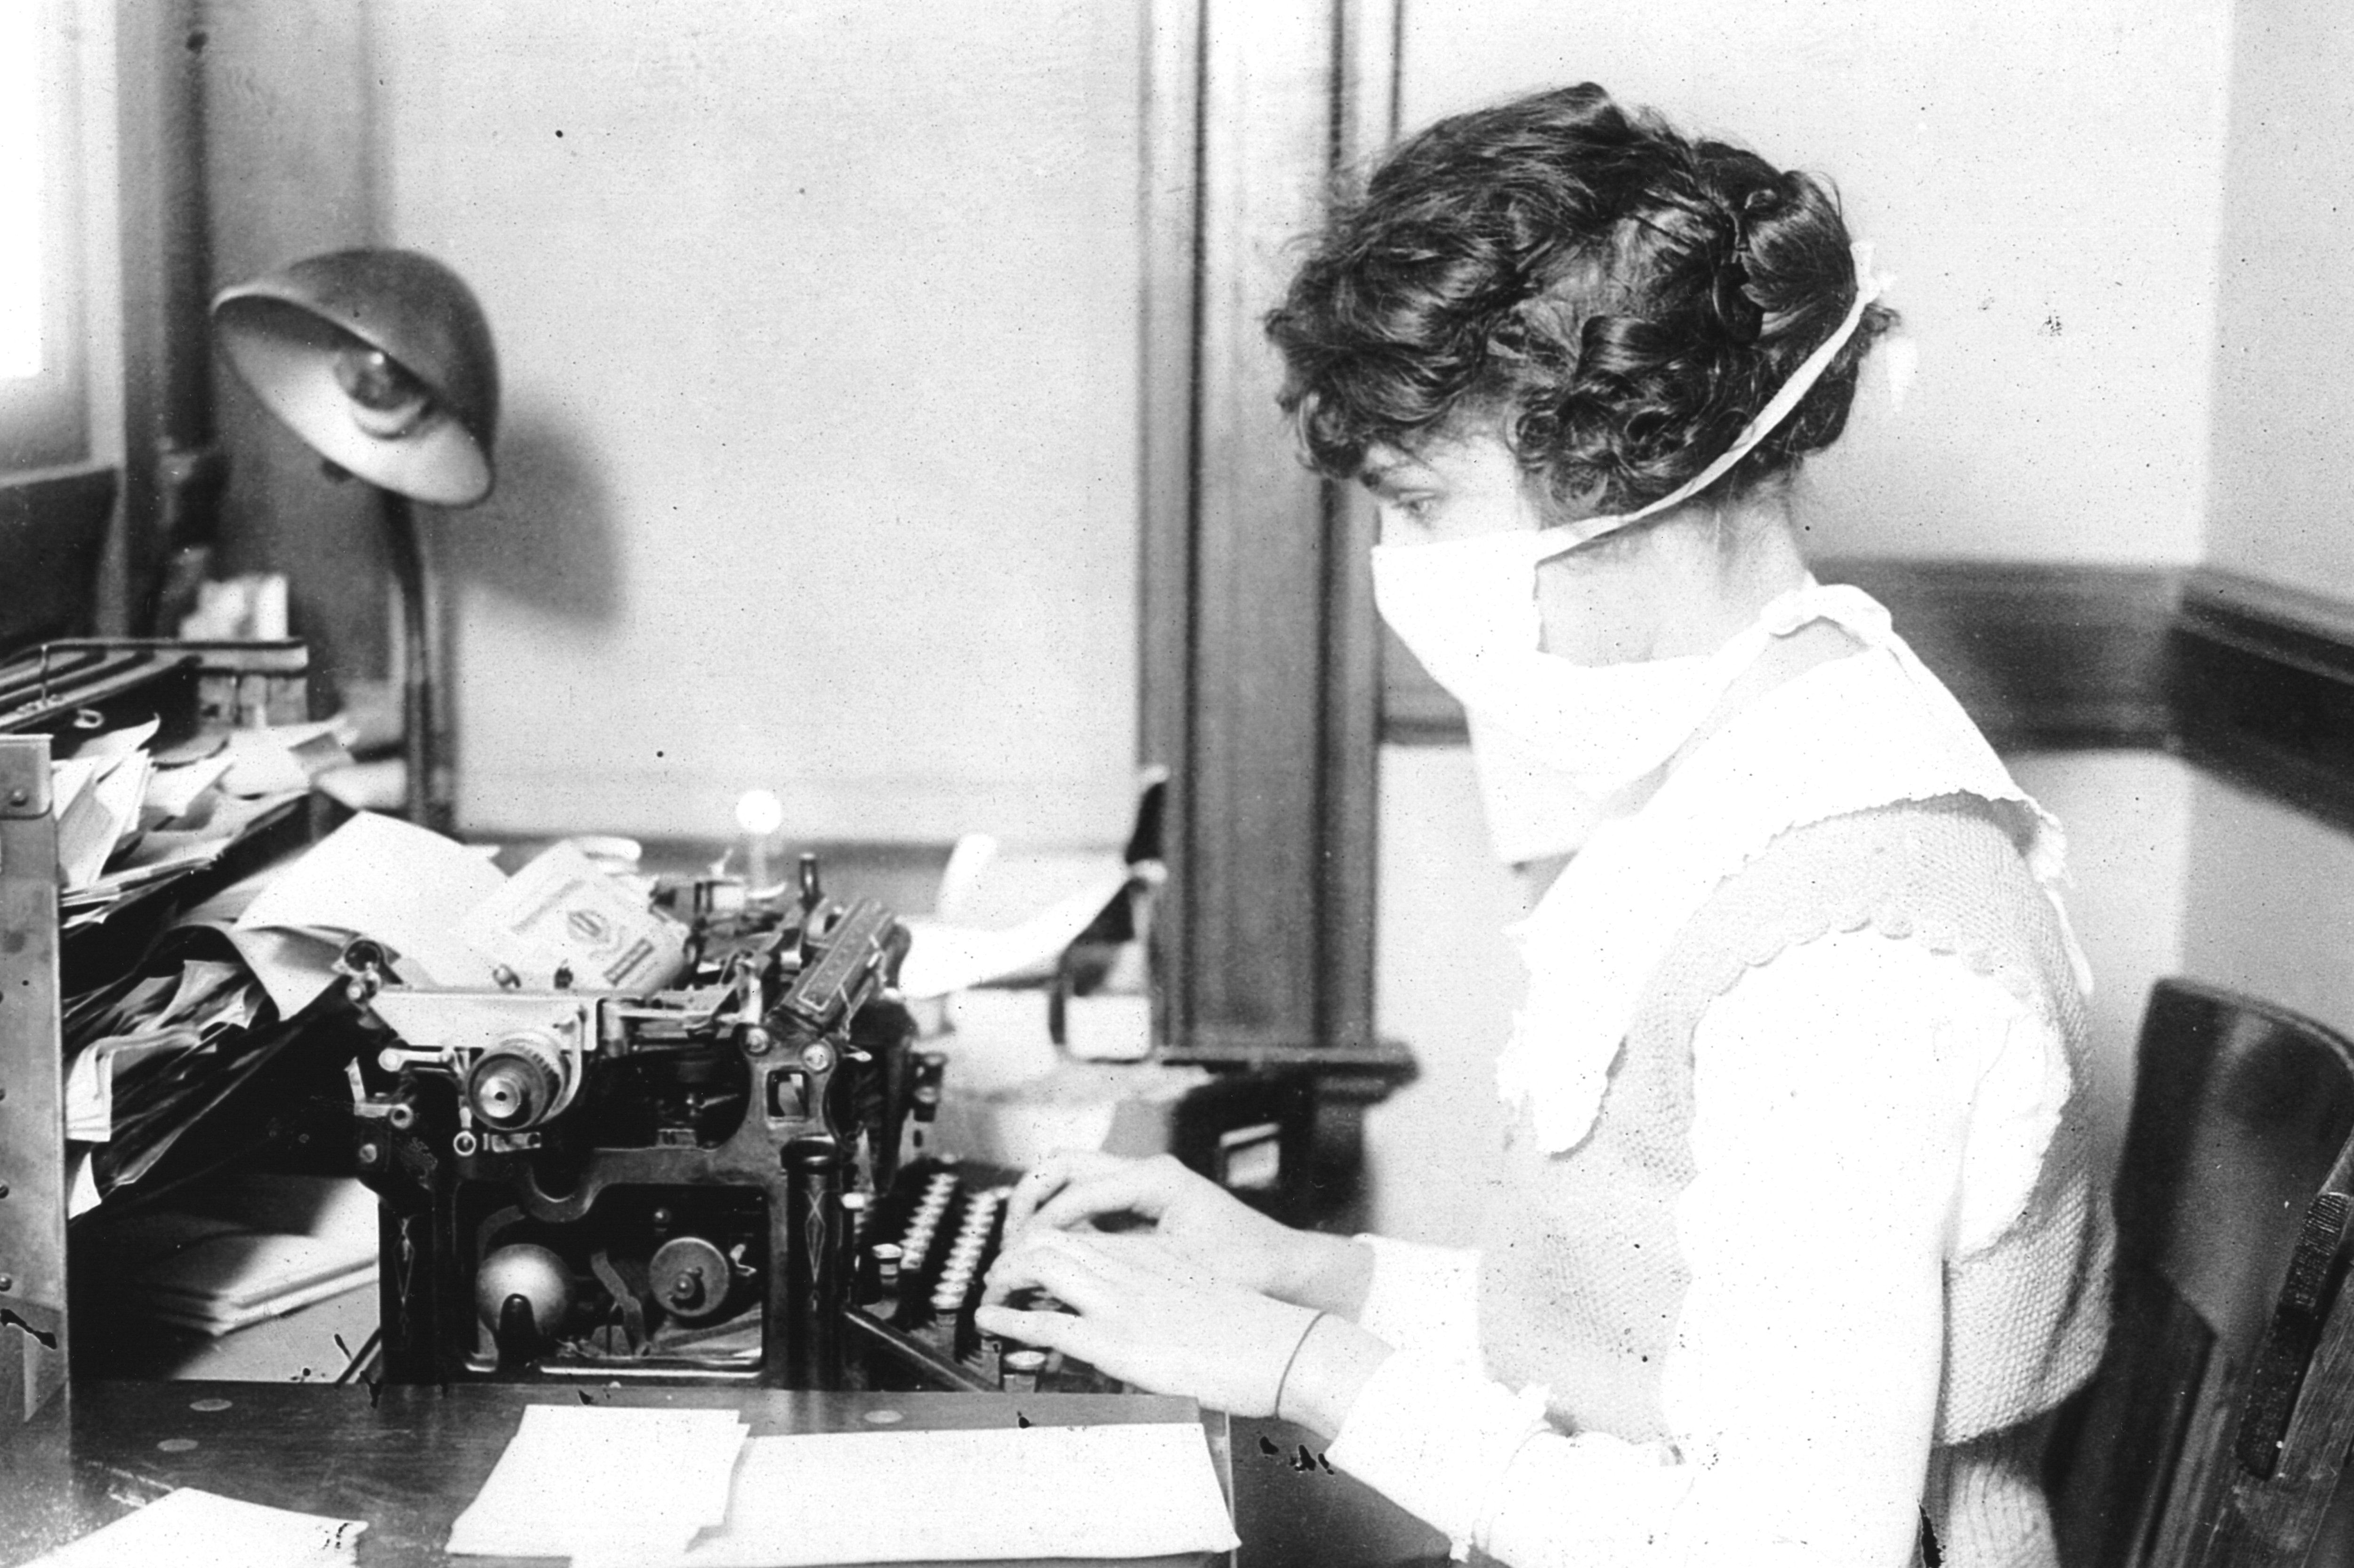 During the 1918 Spanish Flu Pandemic Typist wearing mask, New York City. (October 16, 1918)